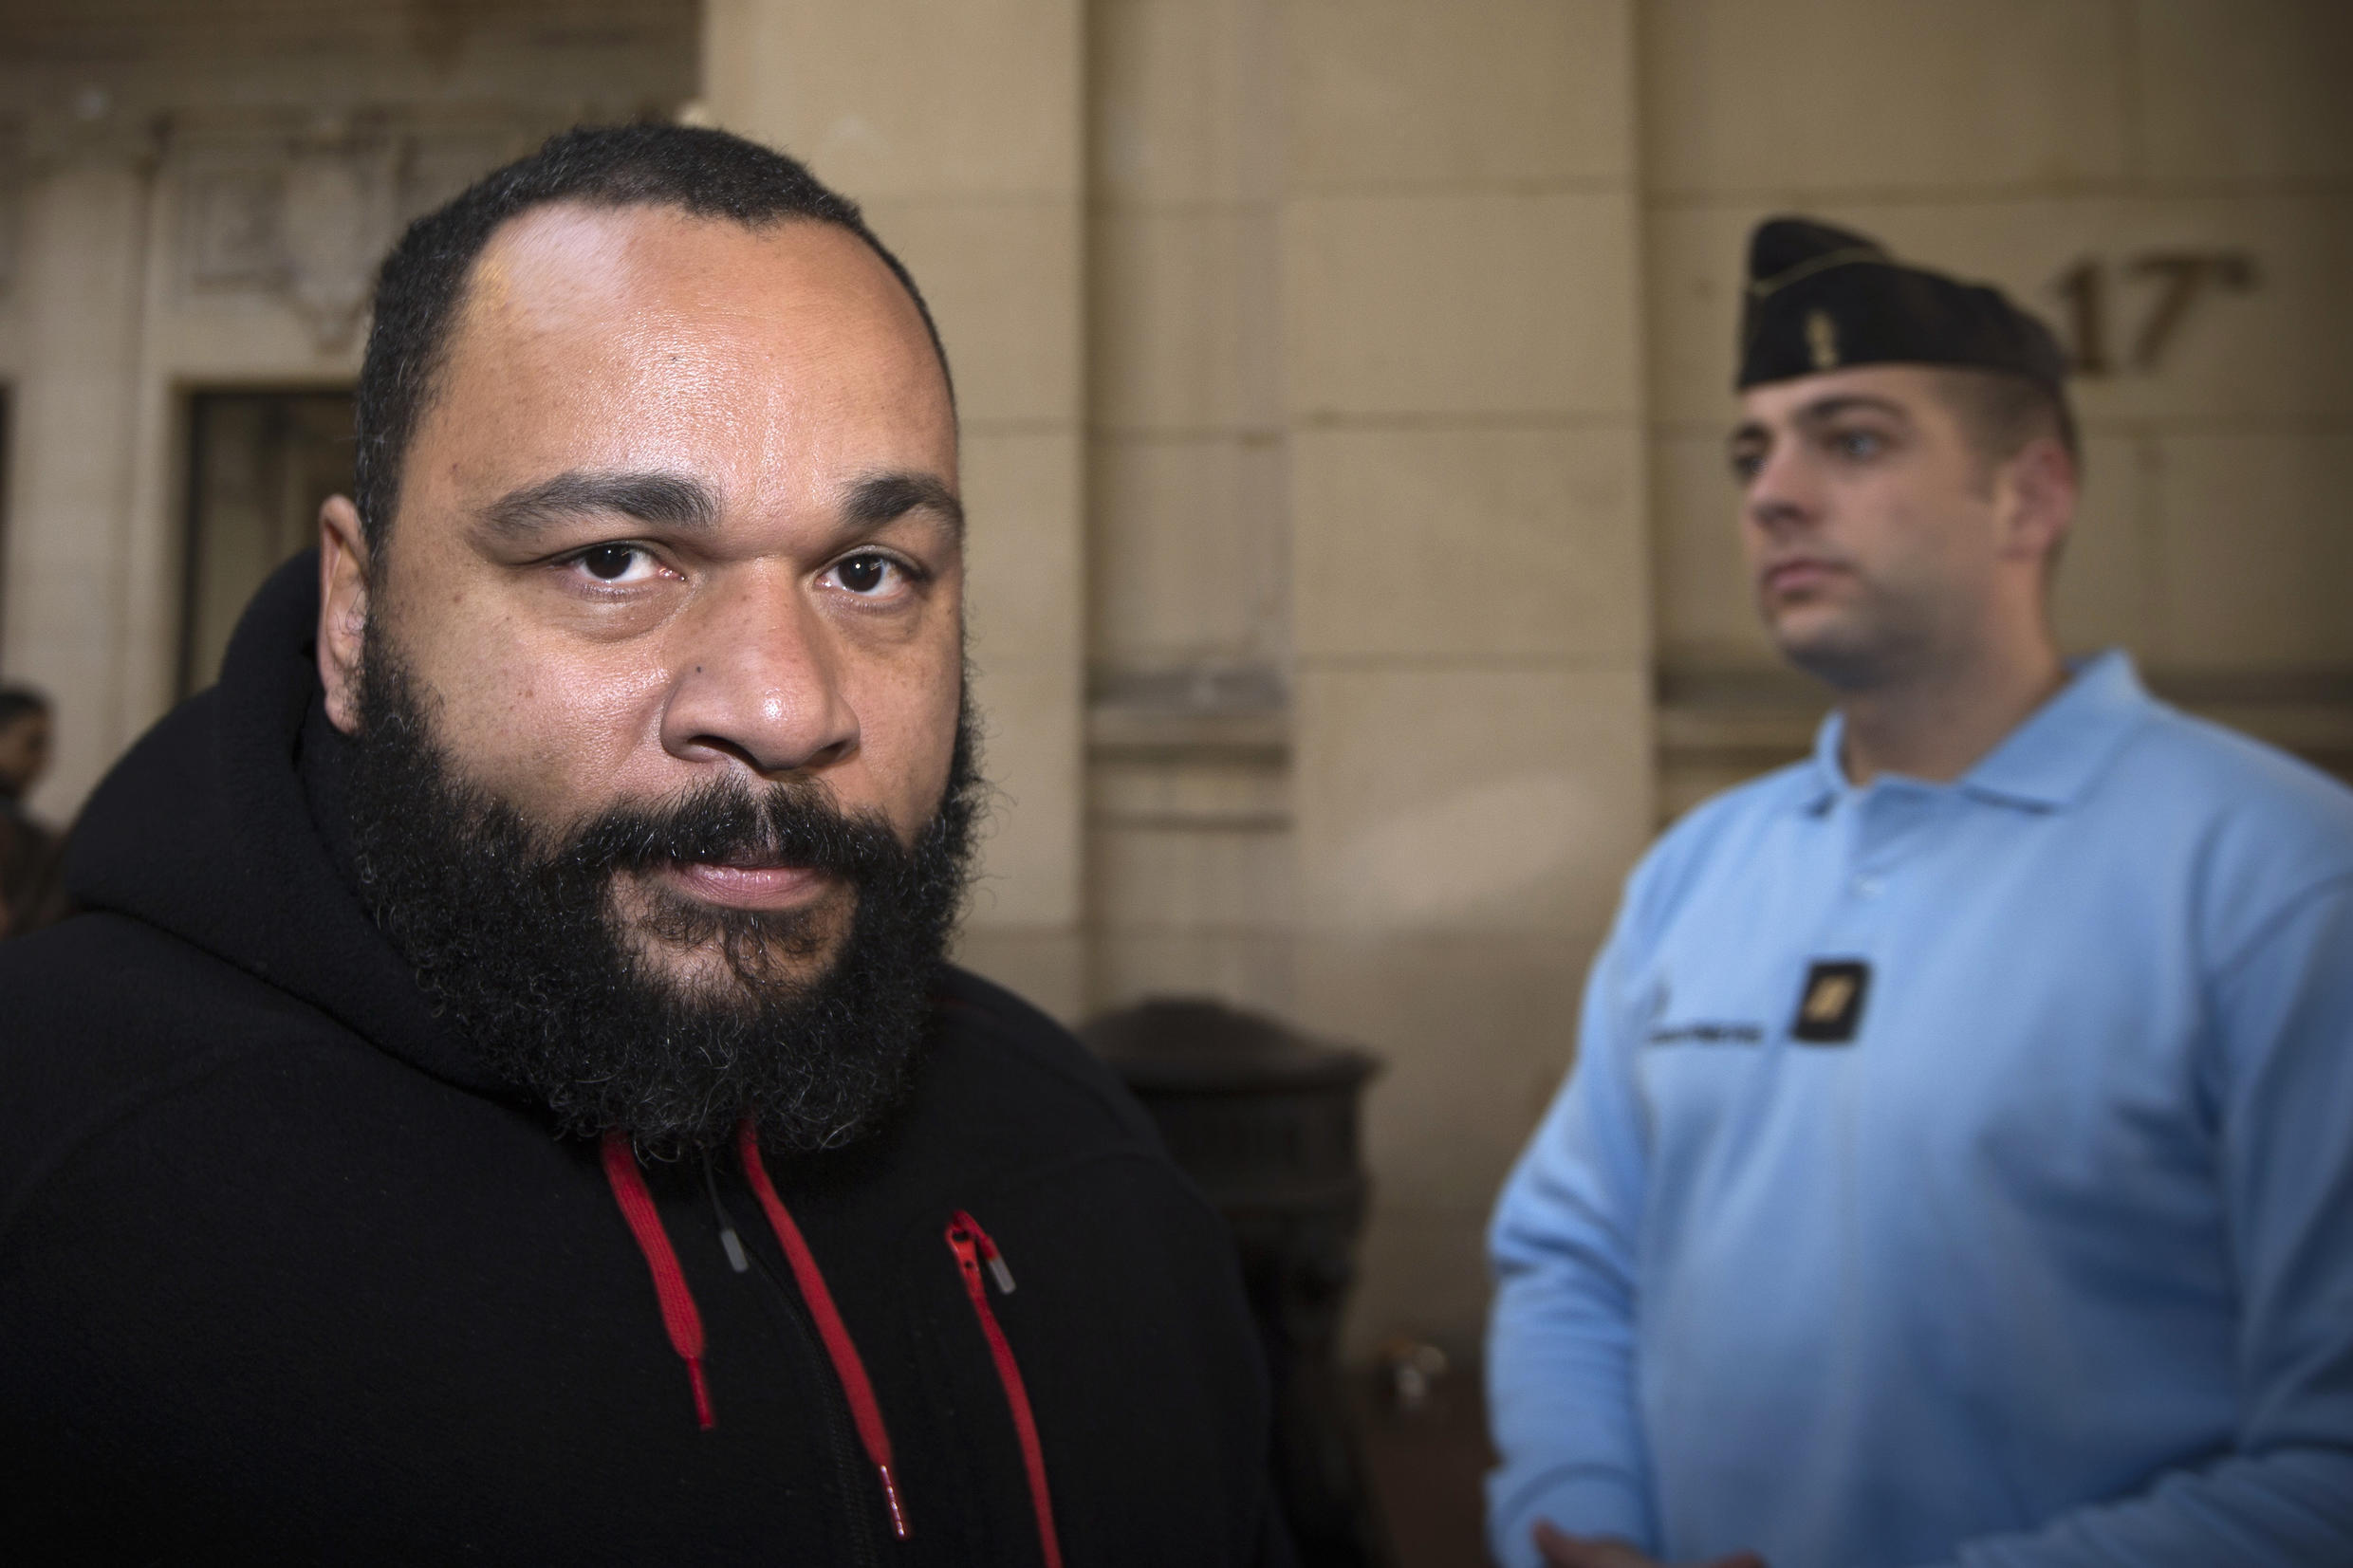 File photo of French comedian Dieudonné, who has just been banned by the social media site TikTok